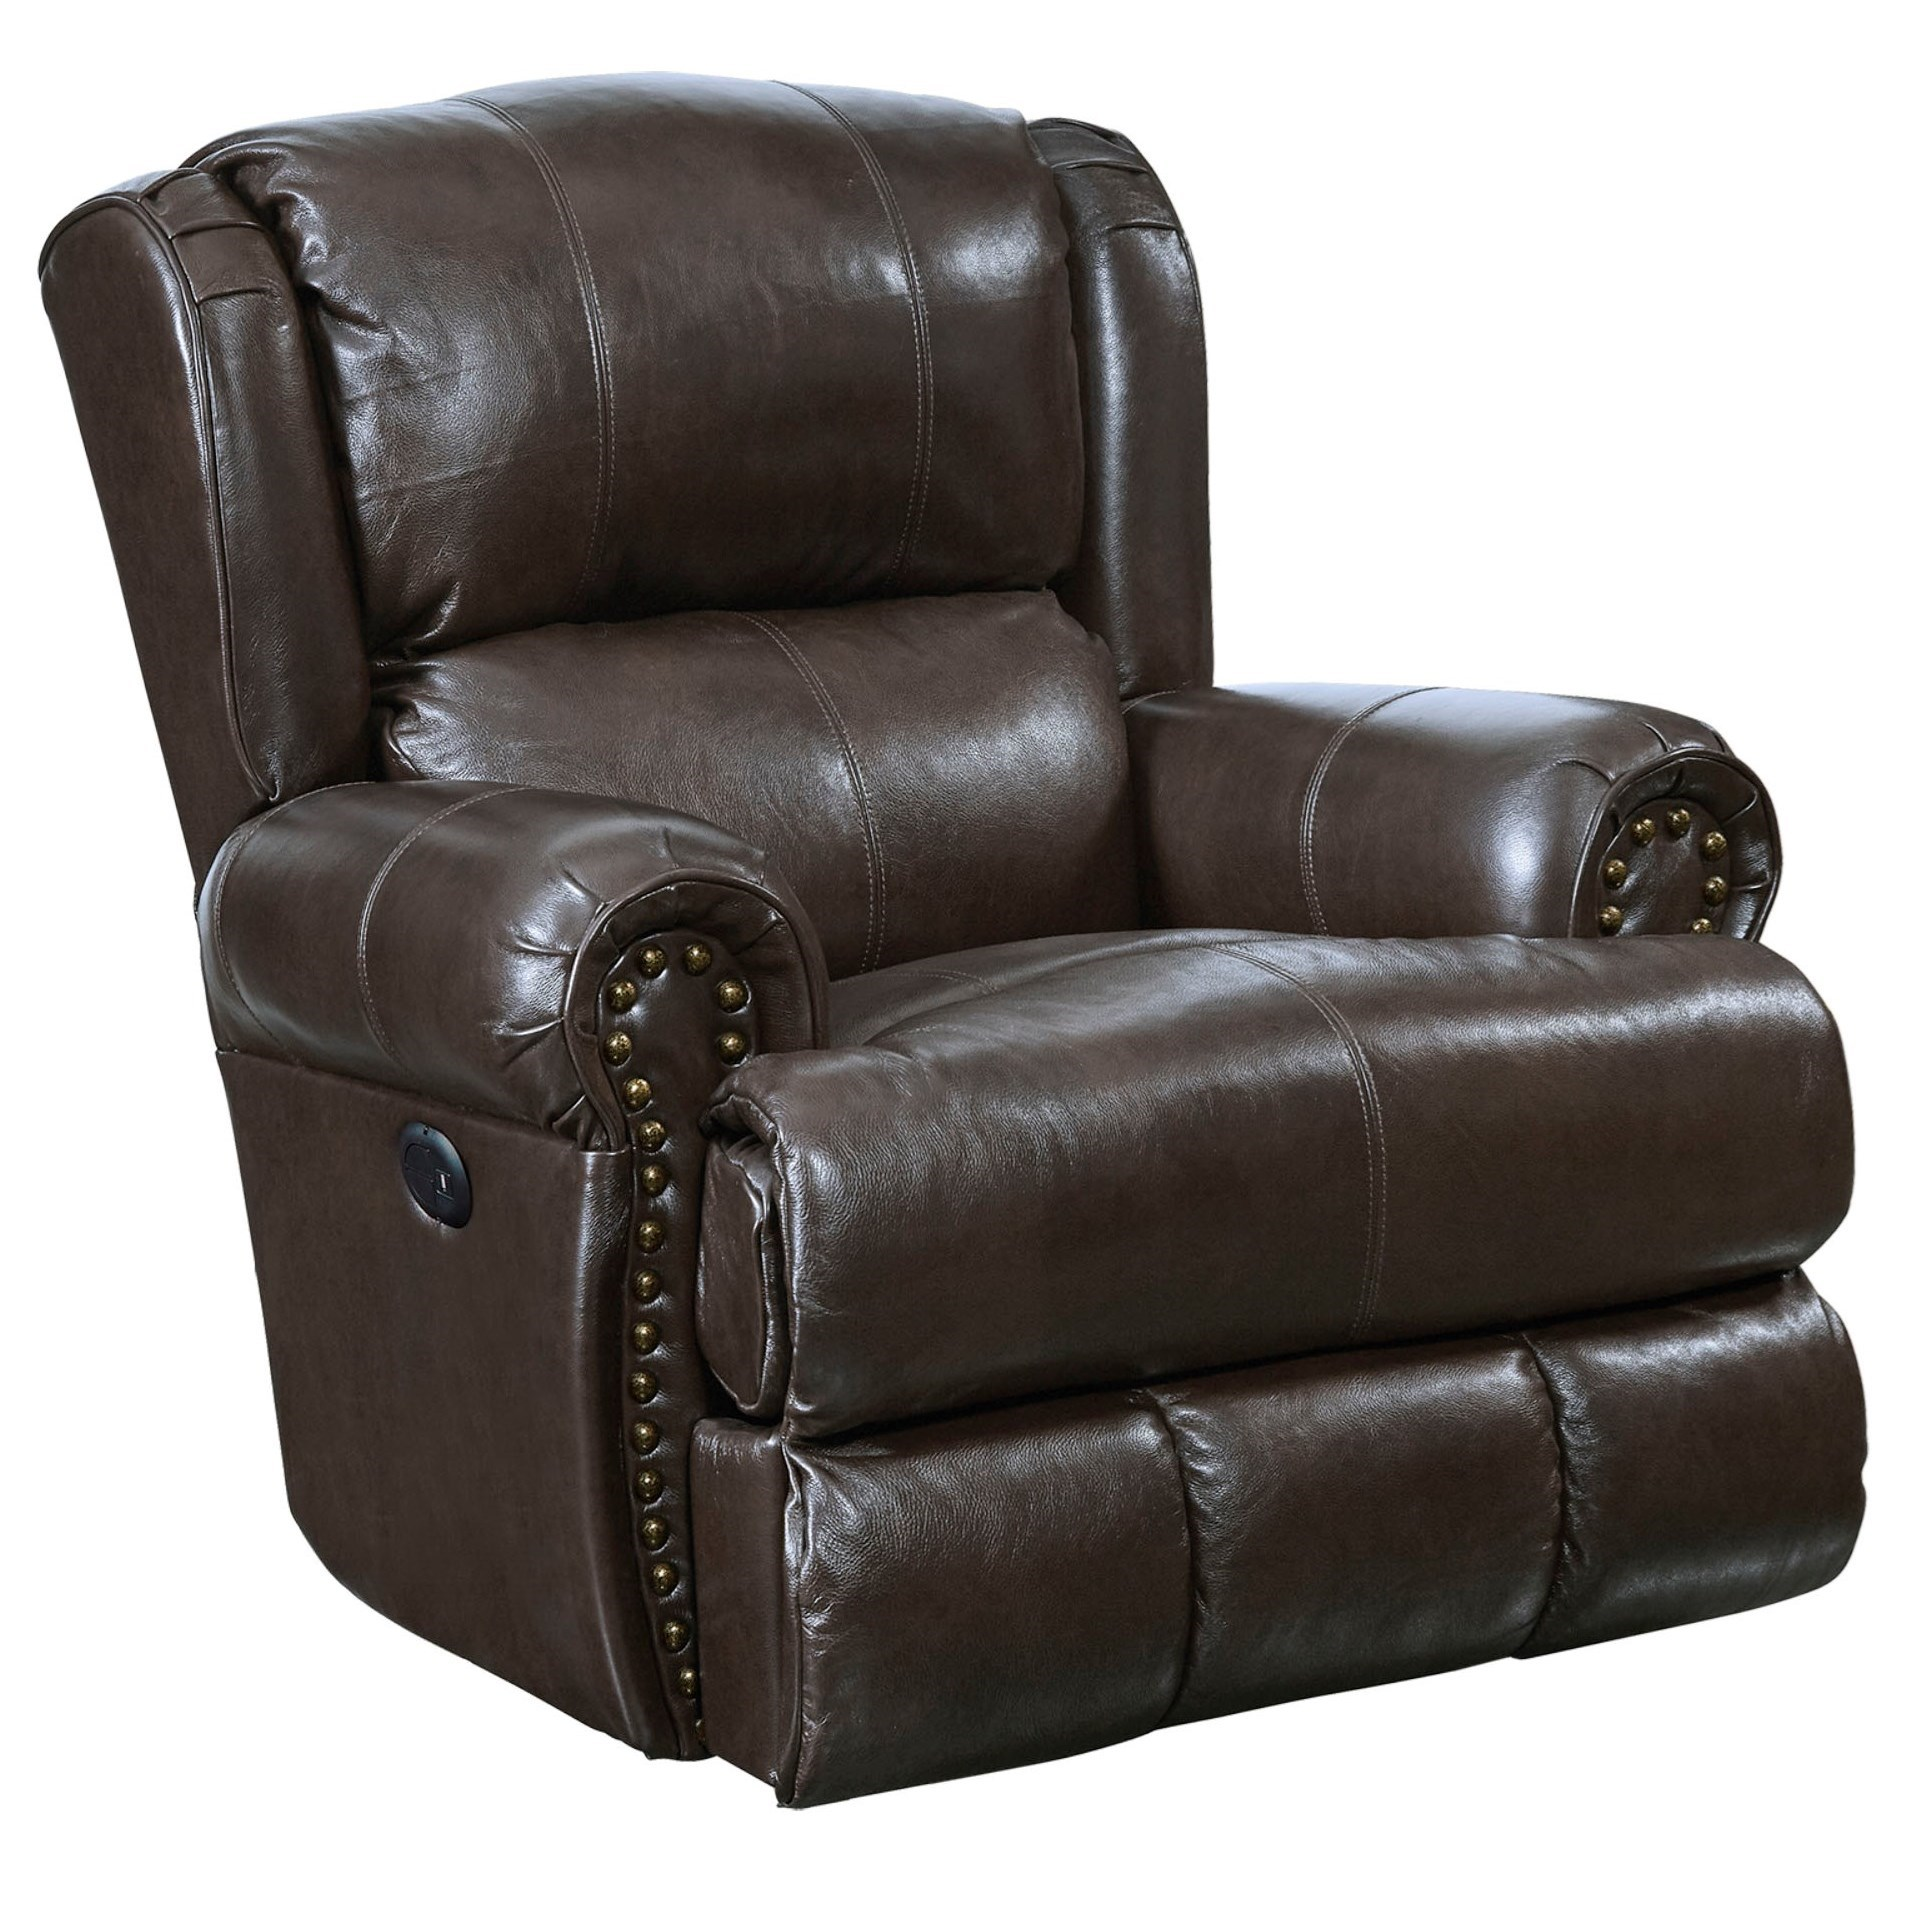 Duncan Power Deluxe Lay Flat Recliner by Catnapper at Northeast Factory Direct